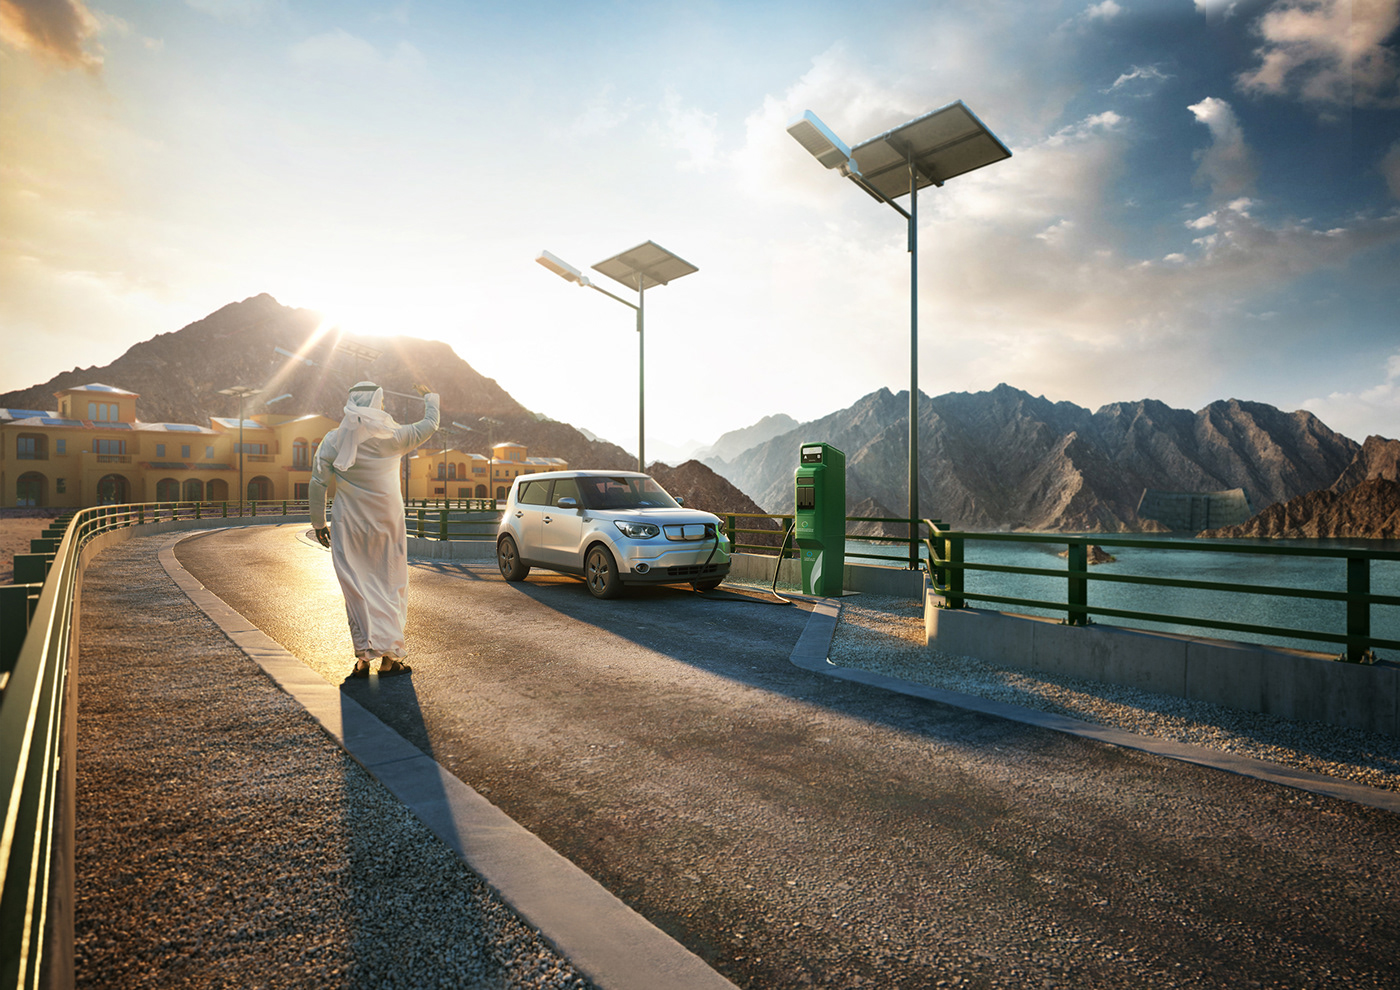 Dewa Smart Initiatives Key Visuals On Behance Solar Panel Car For The Dubai Electricity And Water Authoritys 2 Ie Ev Cars Charging Station Project Roof Top